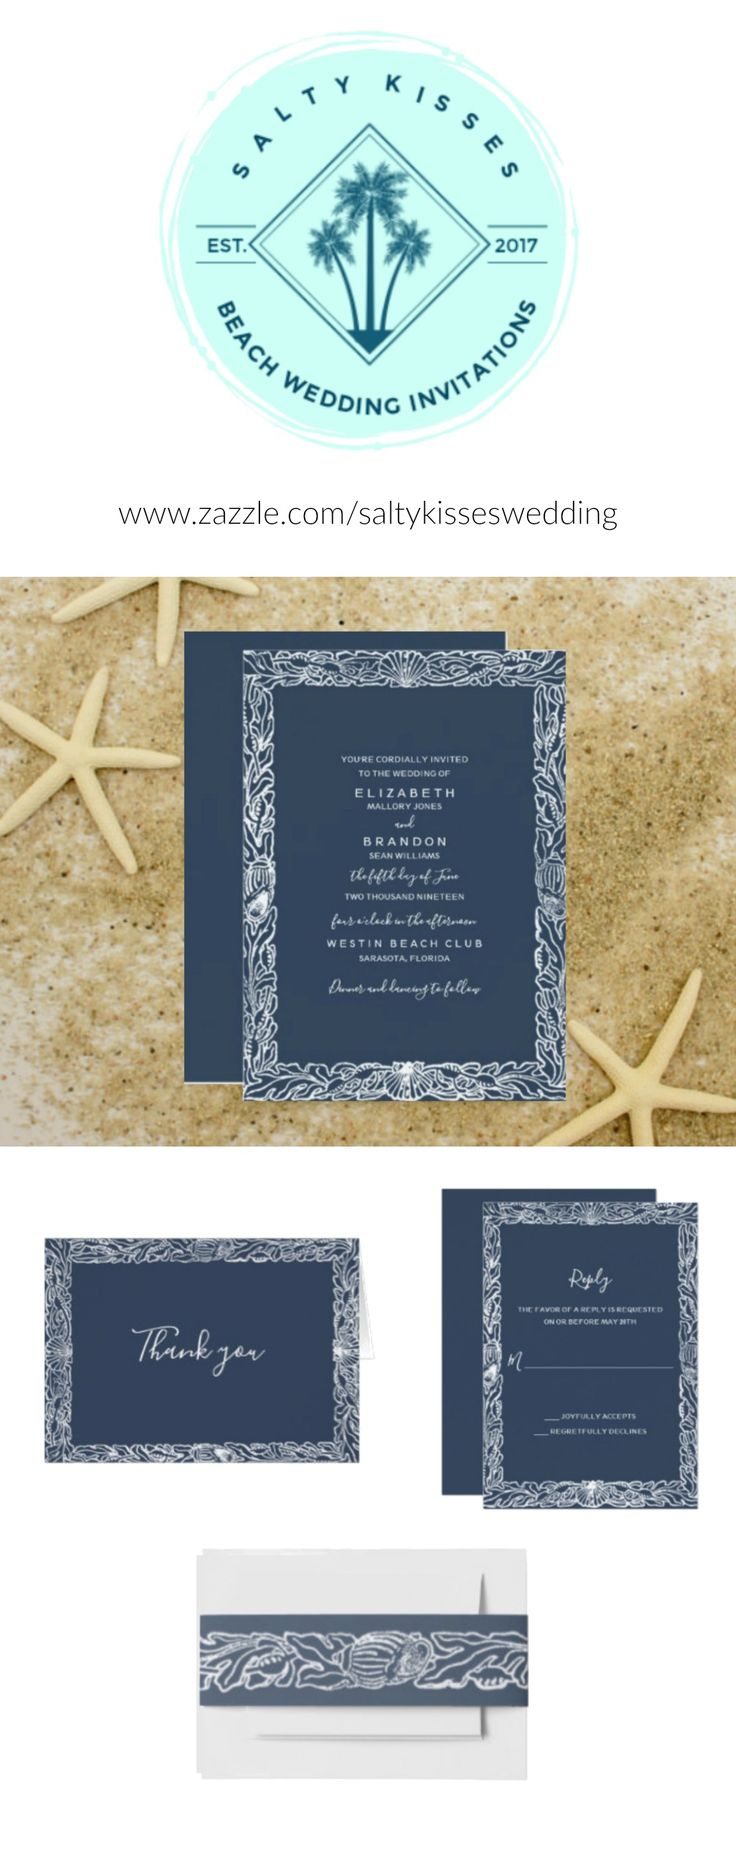 11 Best Starfish Beach Wedding Images On Pinterest Starfish Beach